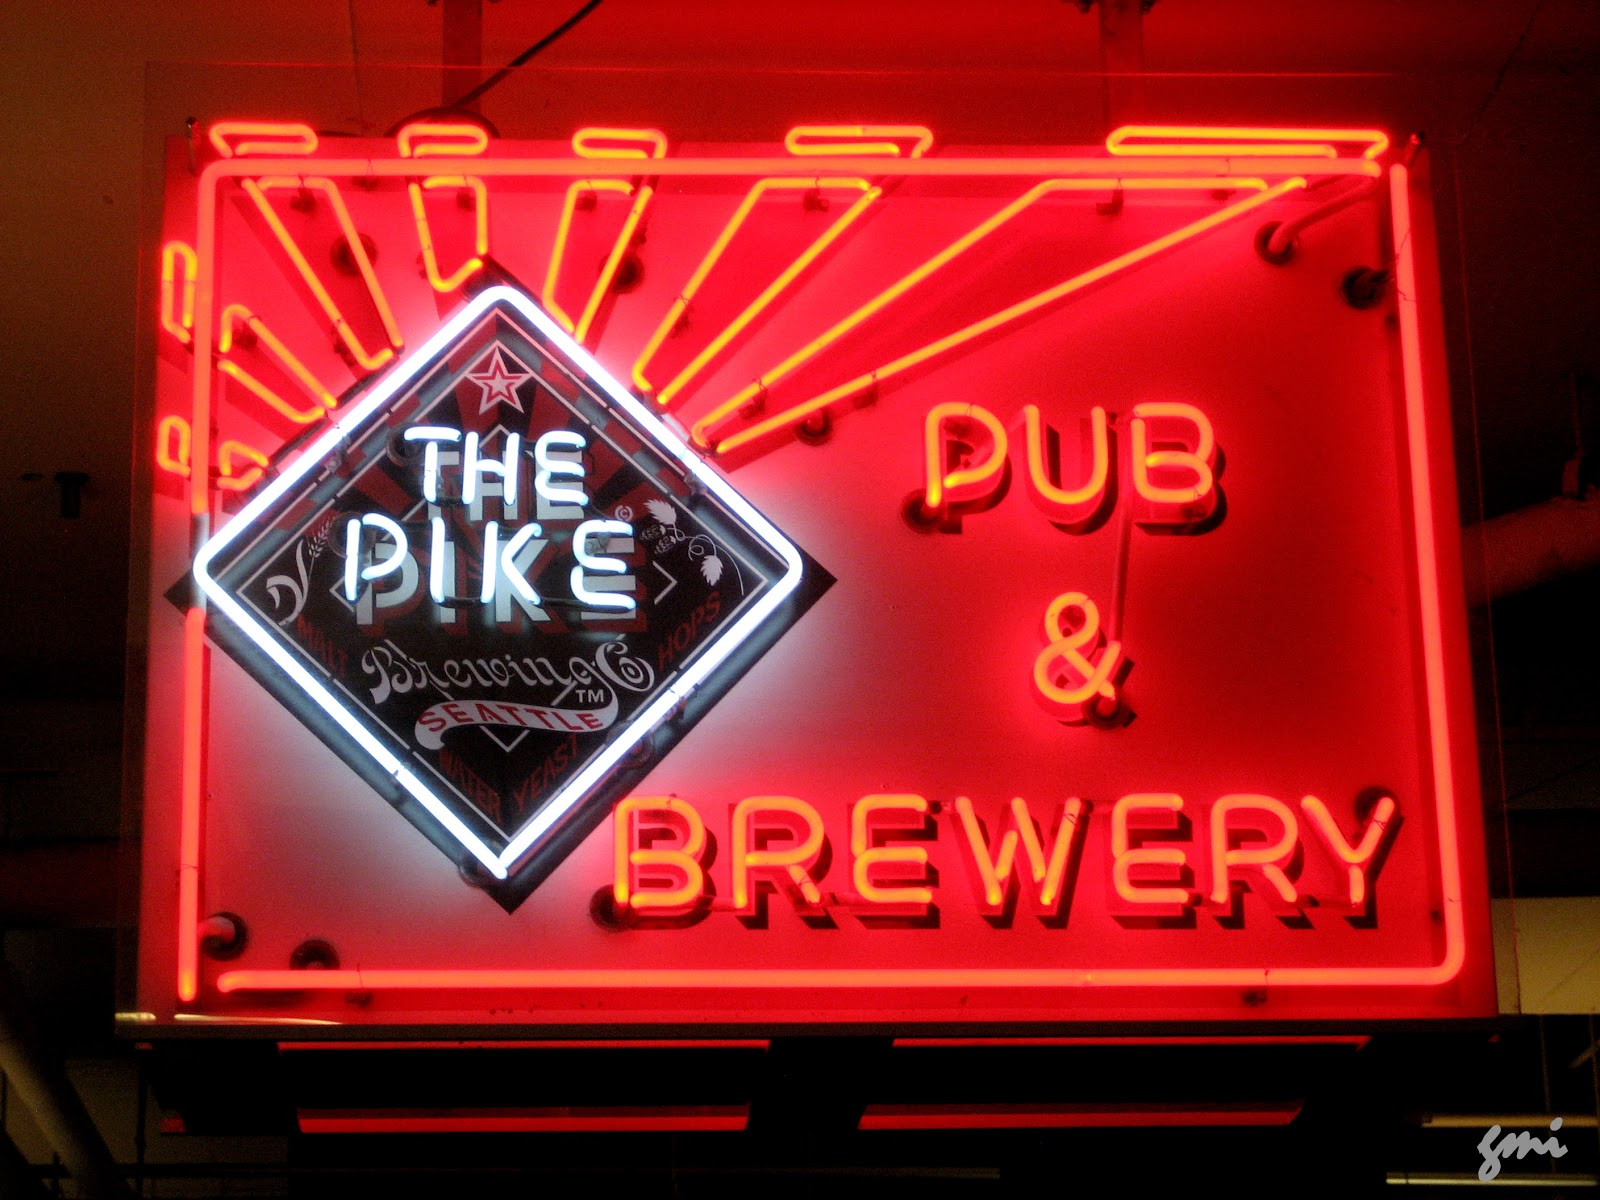 5 Pike Brewing Co Pub I have